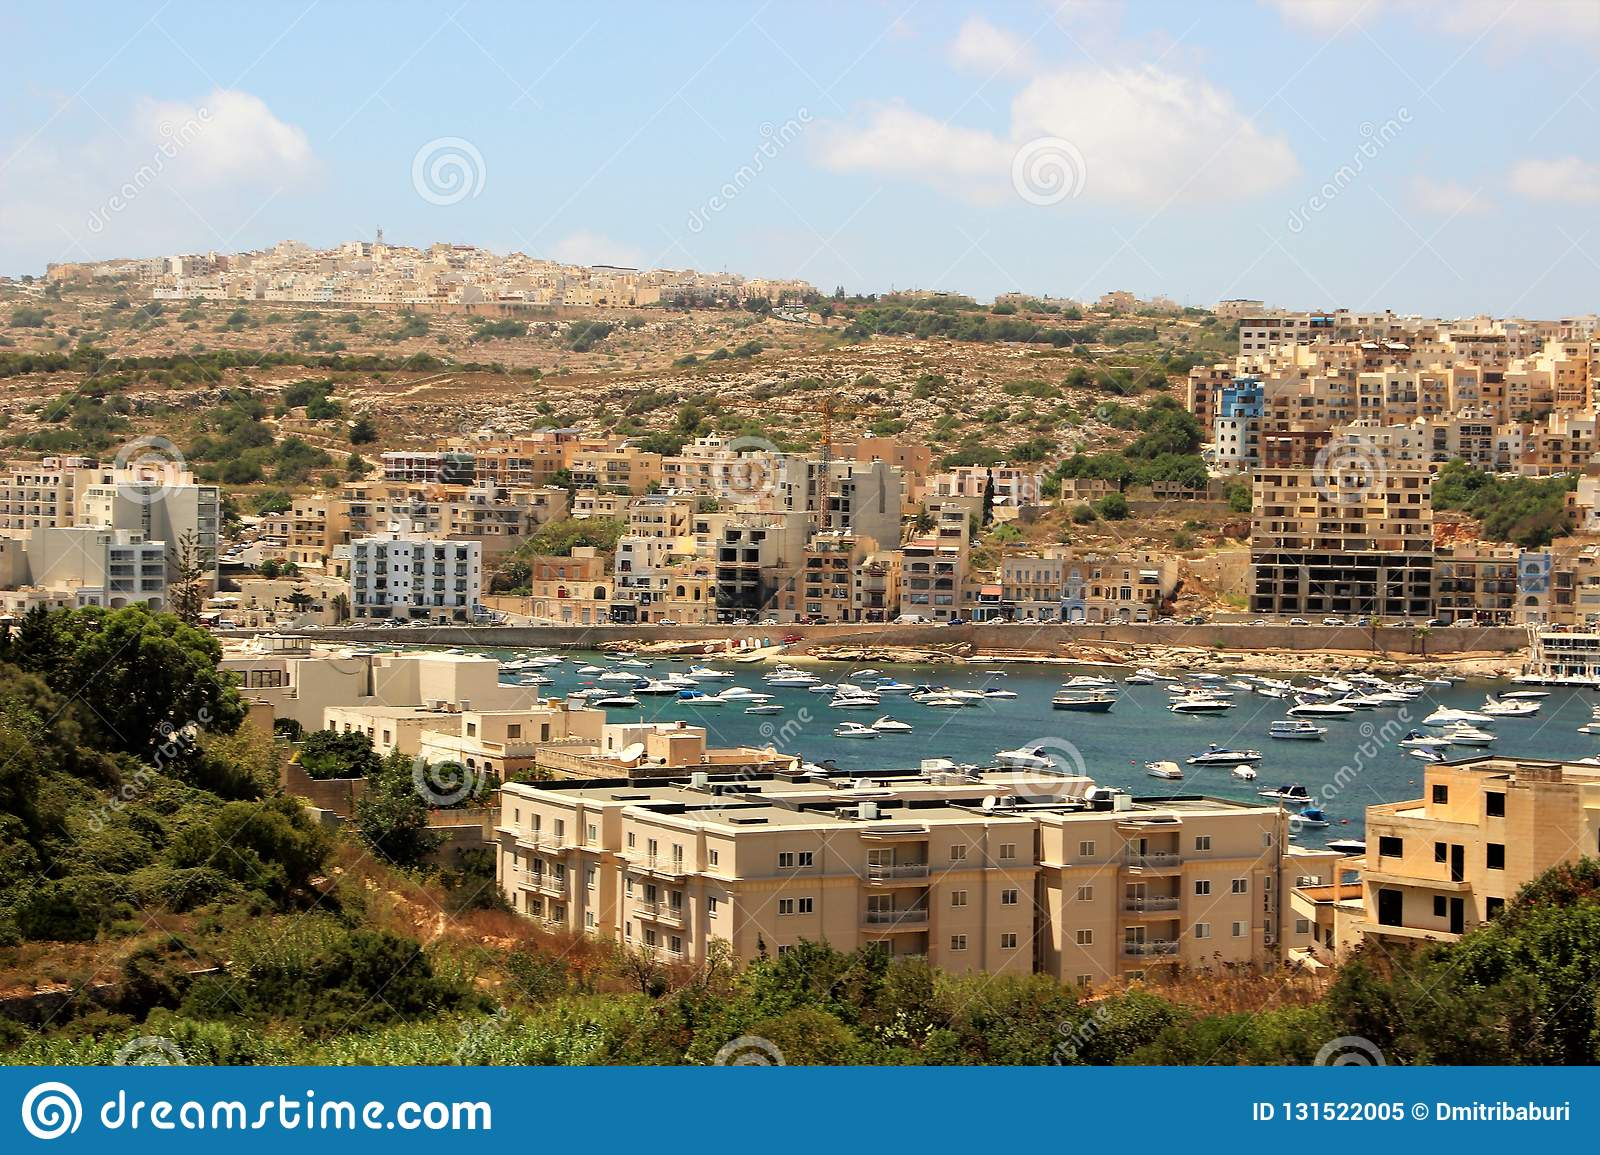 Beautiful view of the seaside resort town on the tip of the island of Malta.